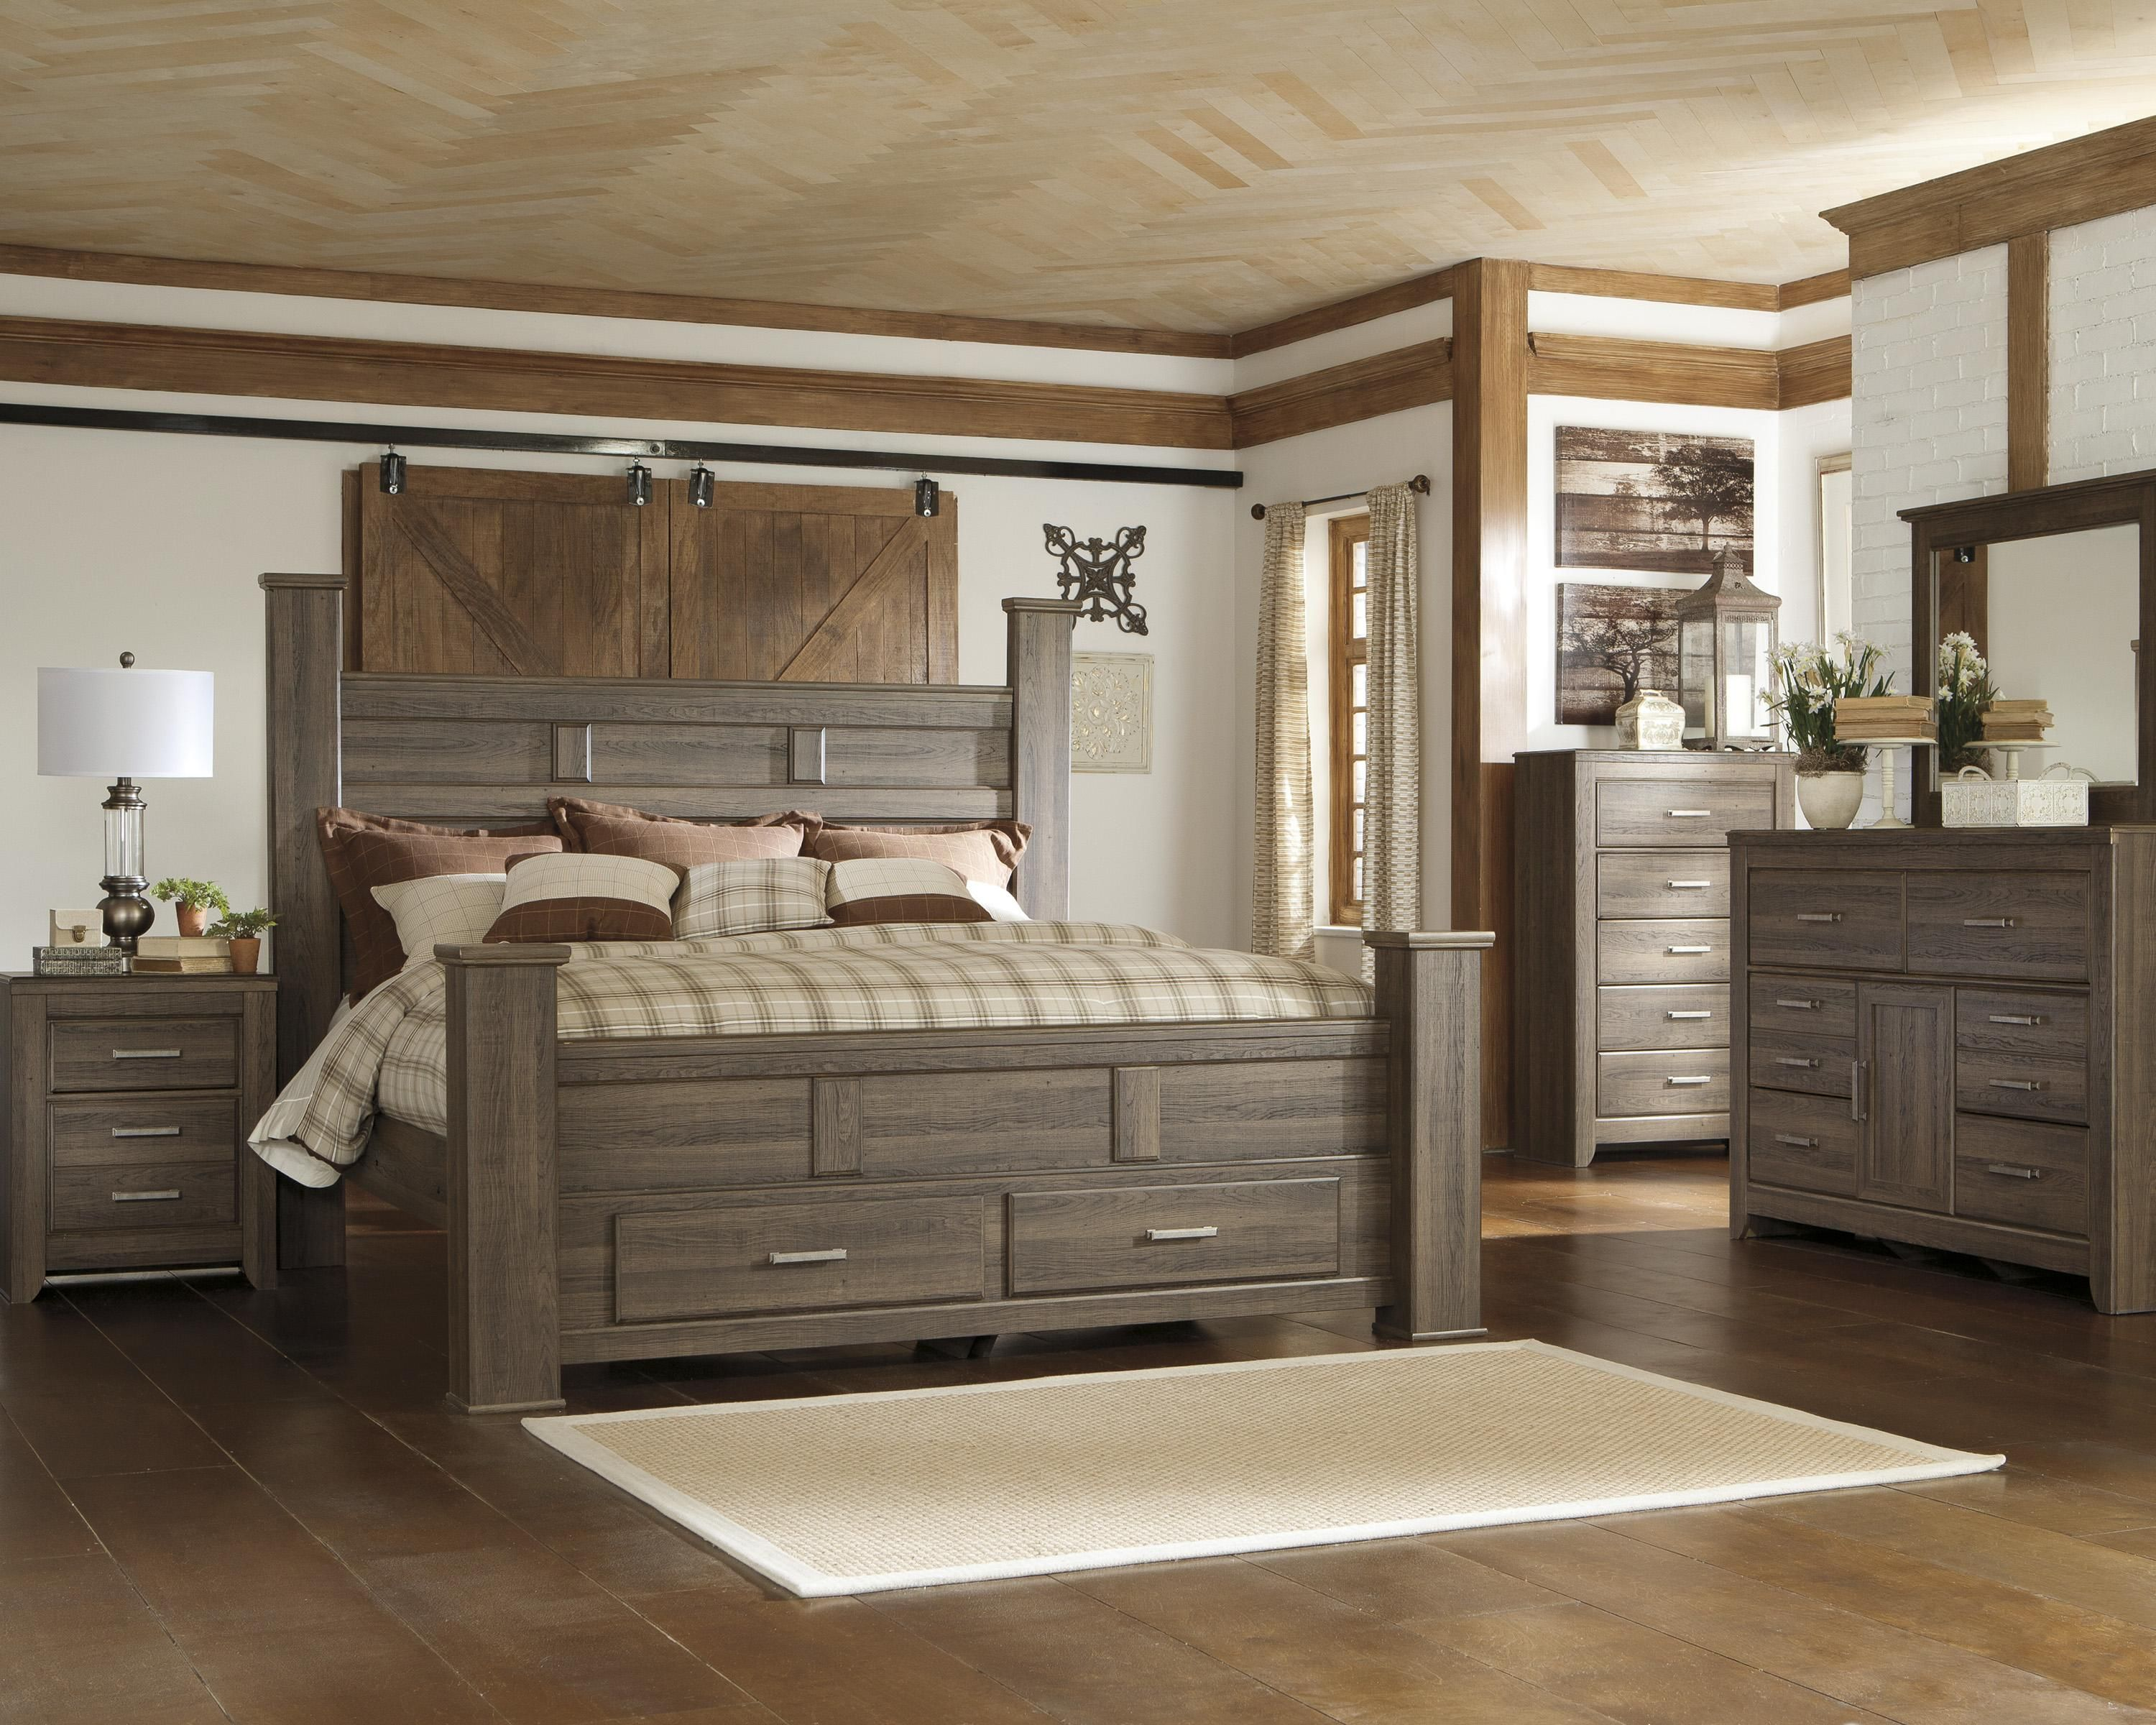 Juararo King Bedroom Group by Signature Design by Ashley | King ...